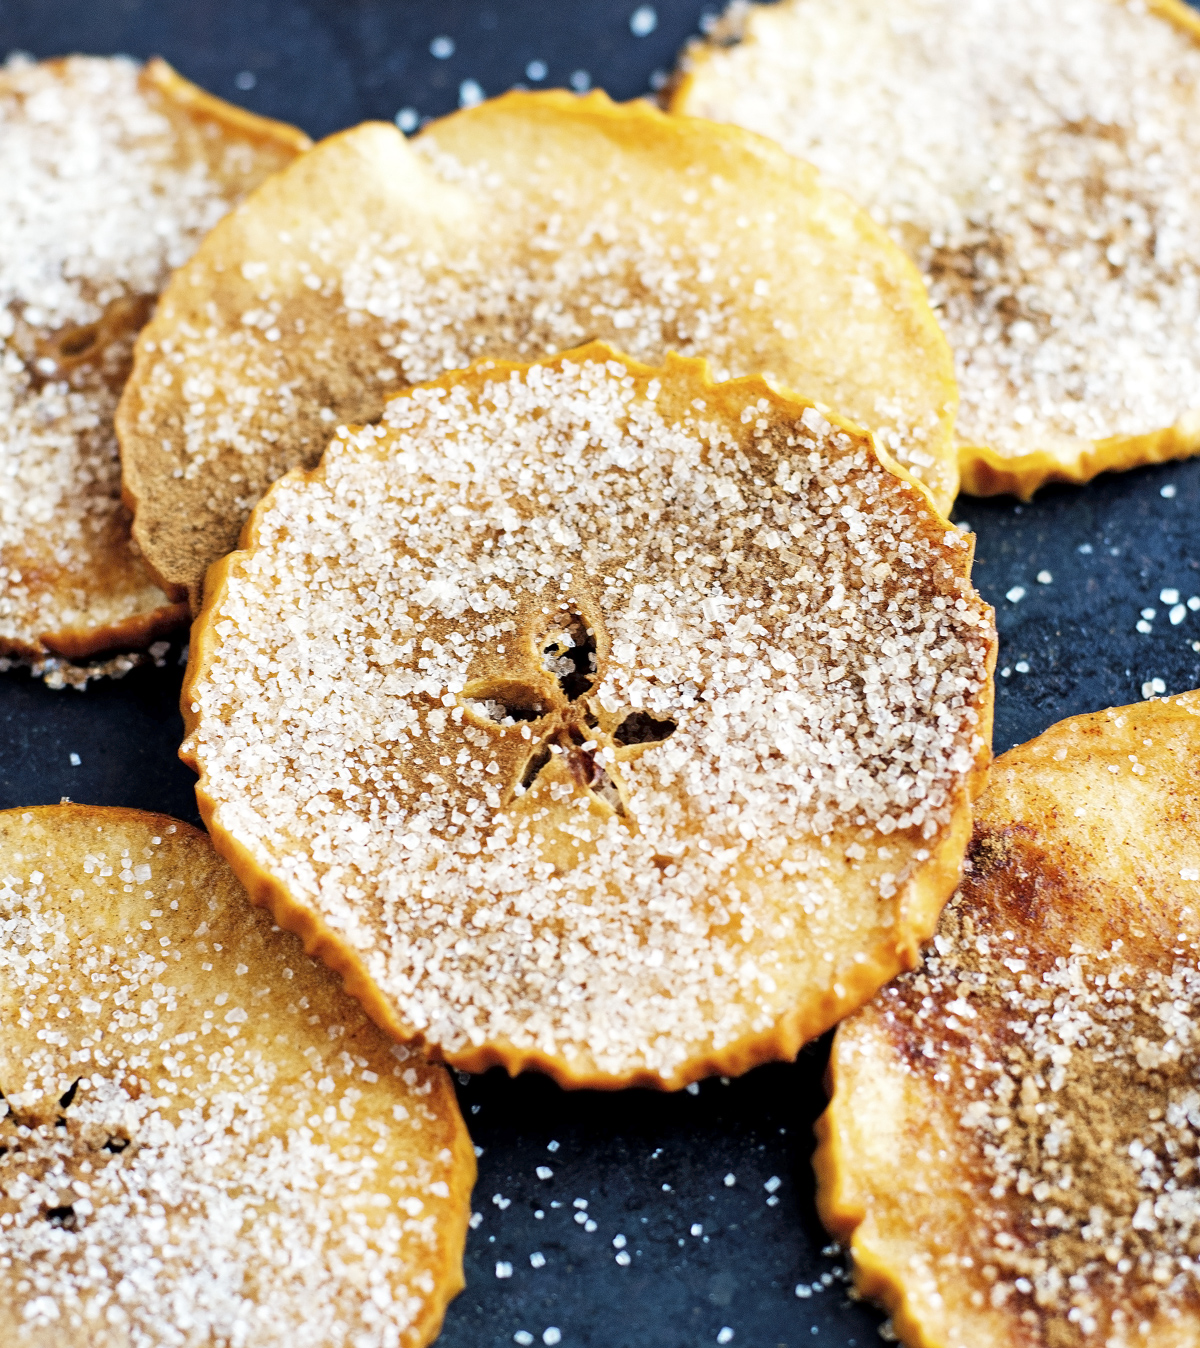 baked apples with cinnamon and sugar that guy